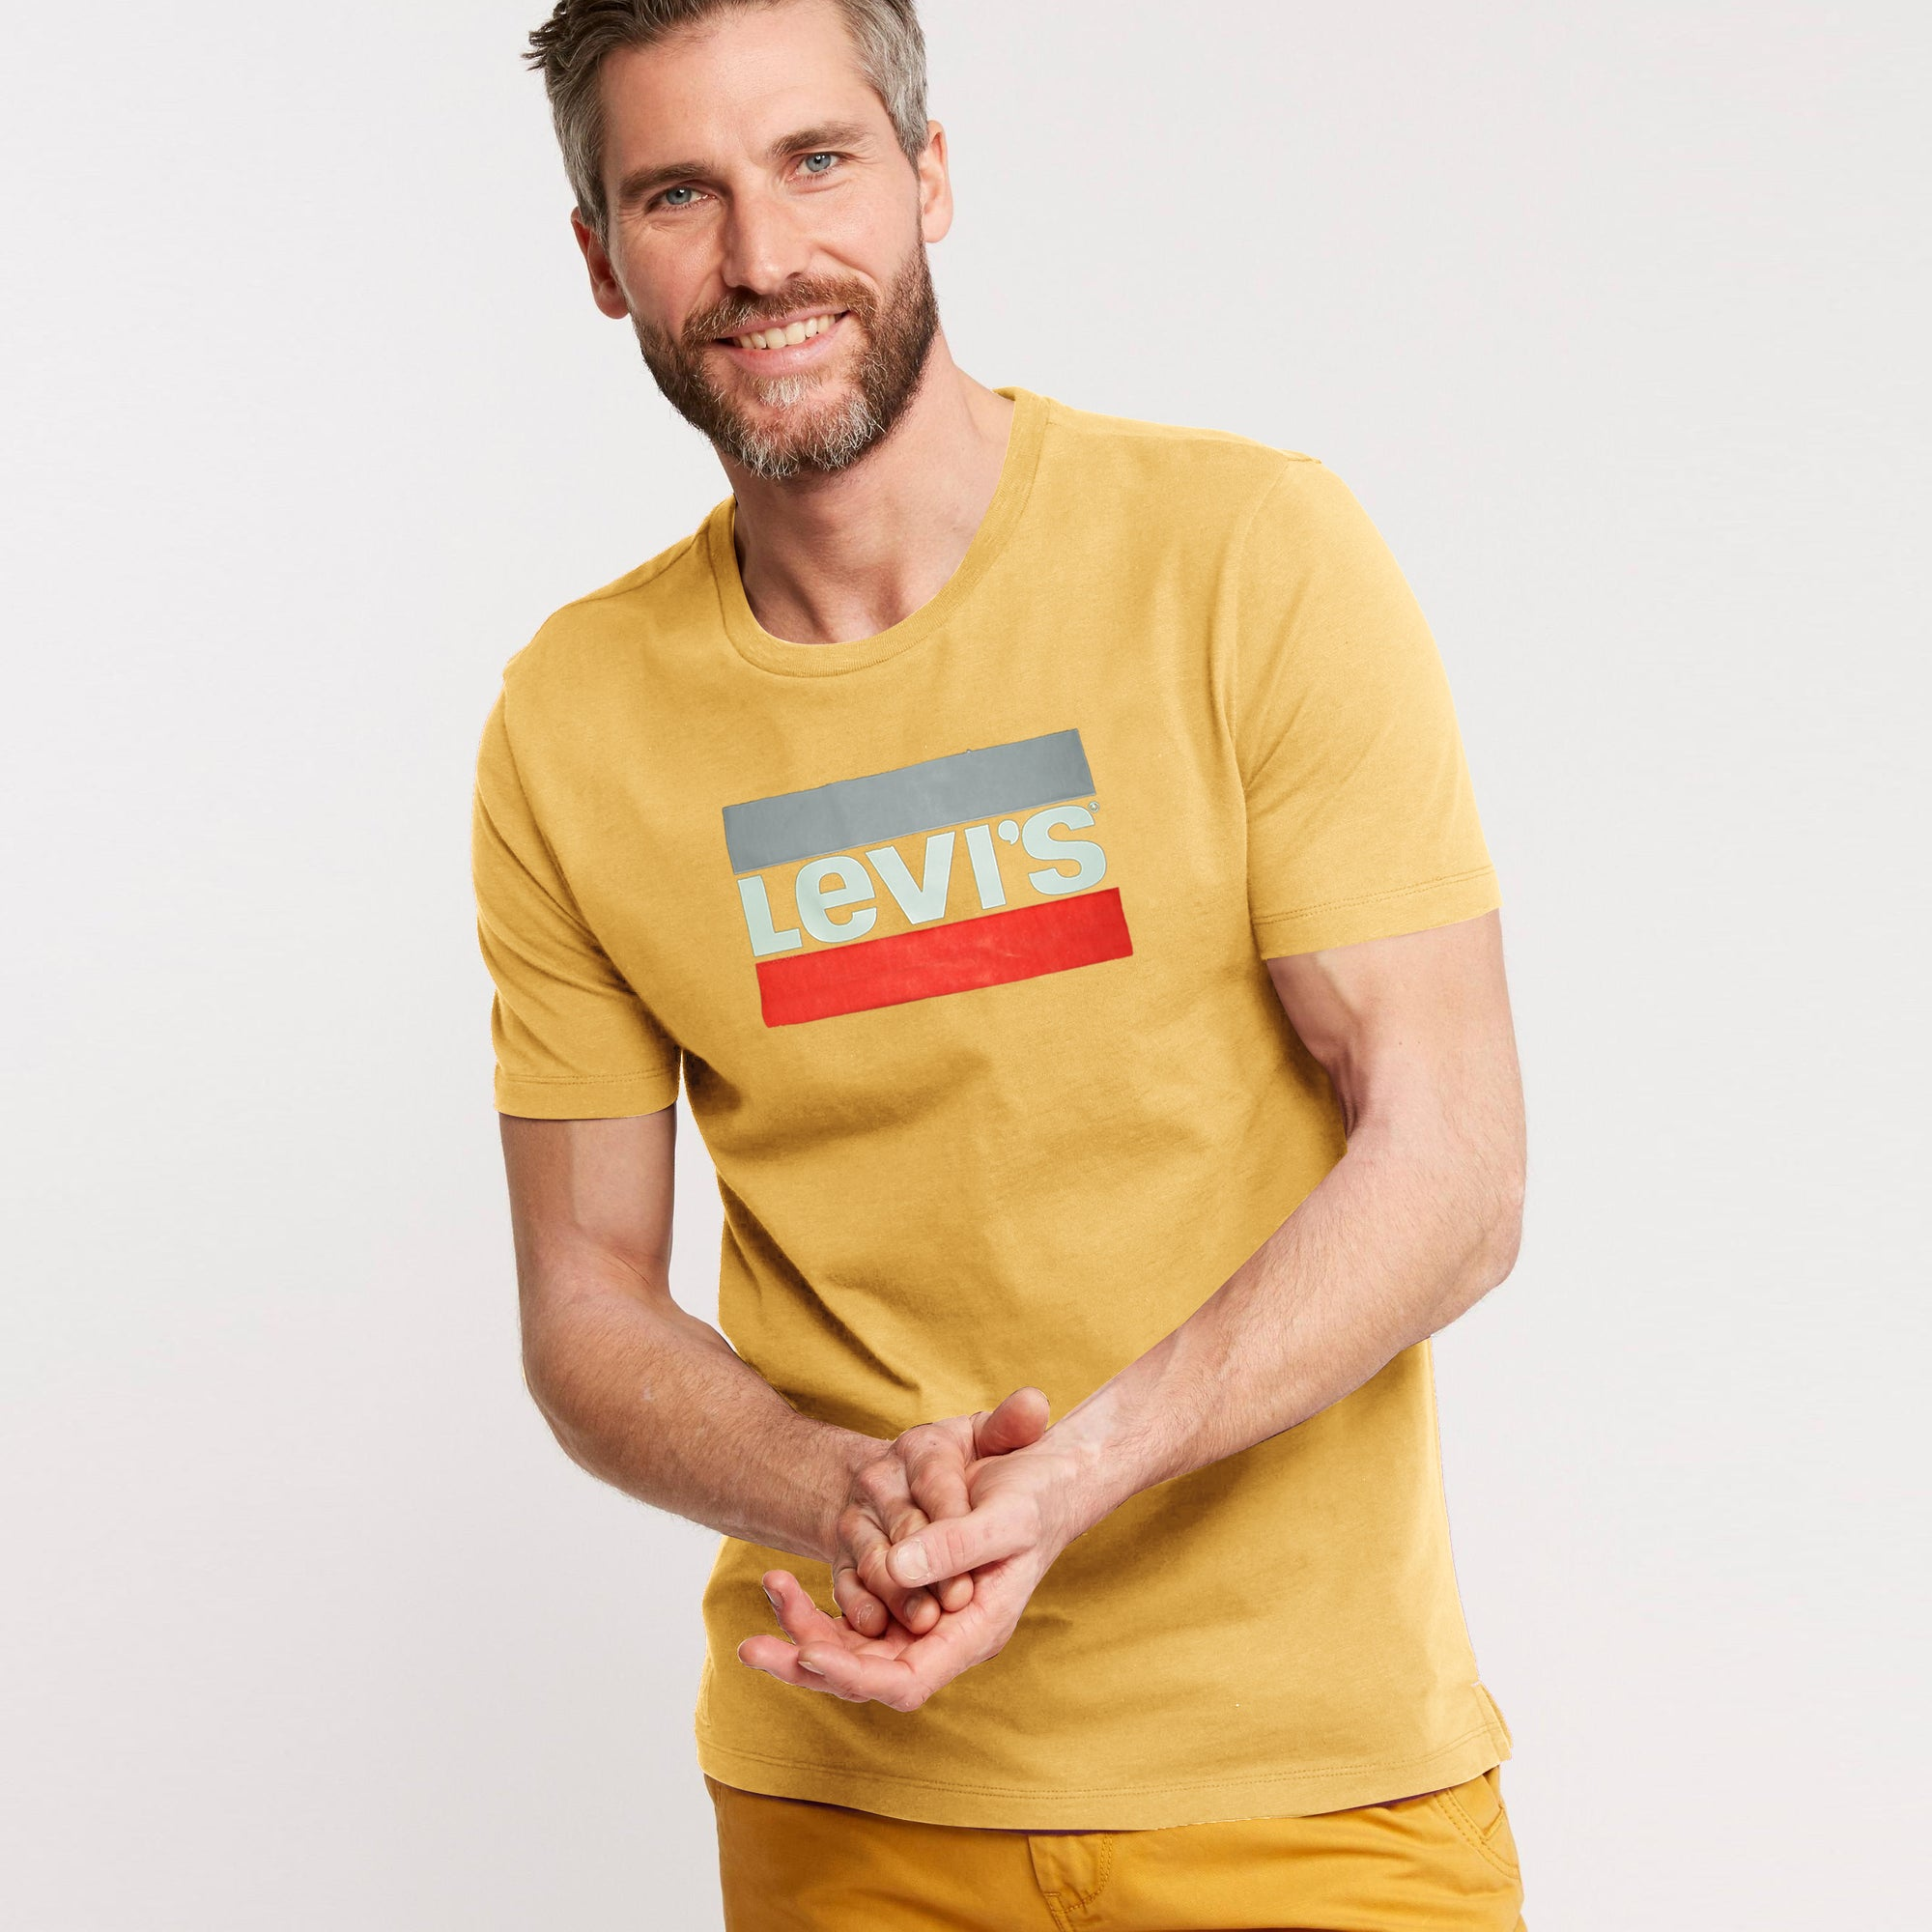 Levis Crew Neck Single Jersey Tee Shirt For Men-Light Yellow-BE8673